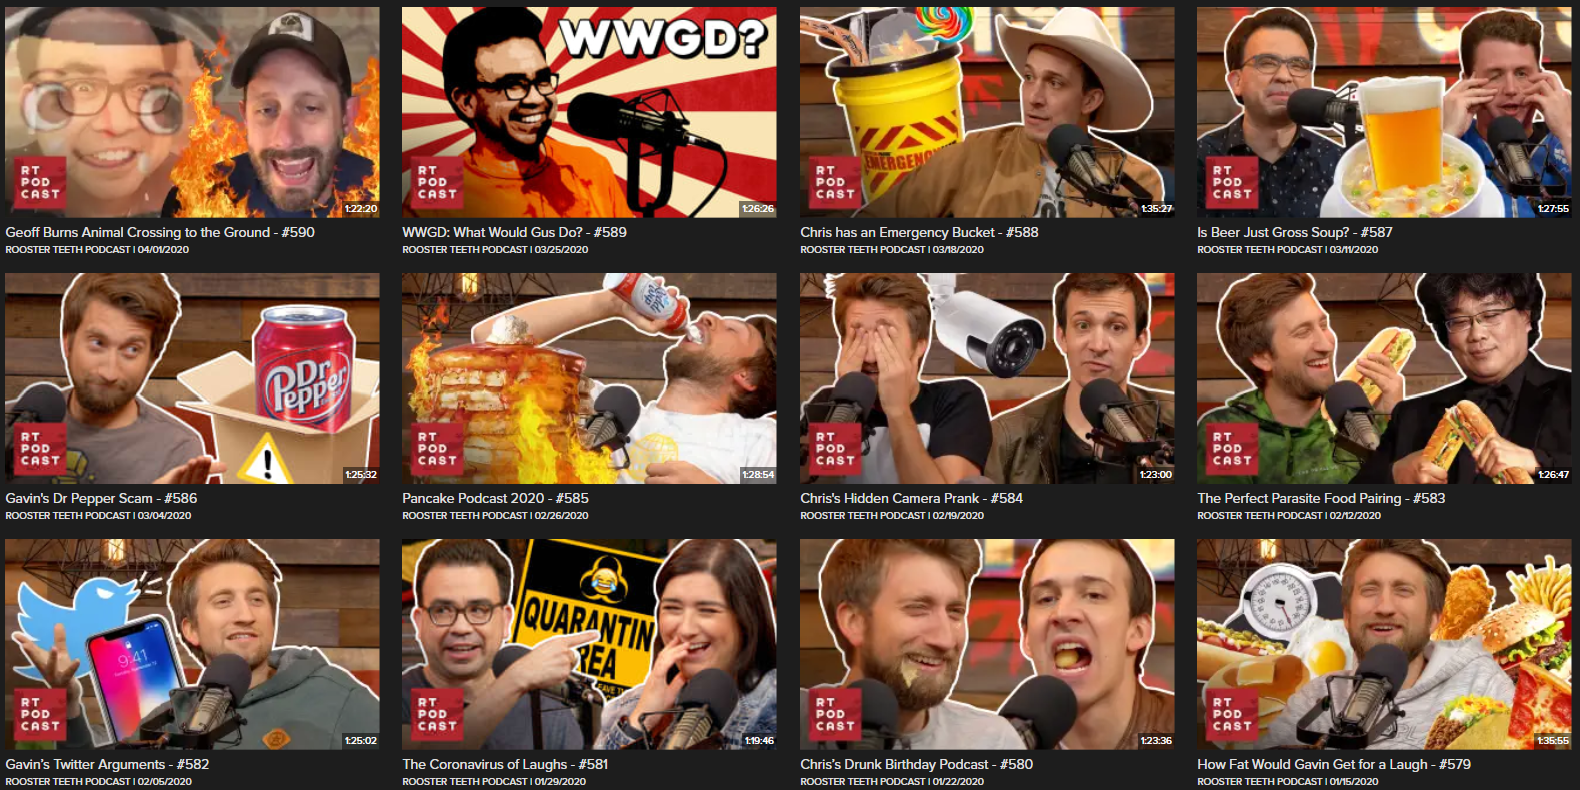 Thumbnails from the Rooster Teeth podcast